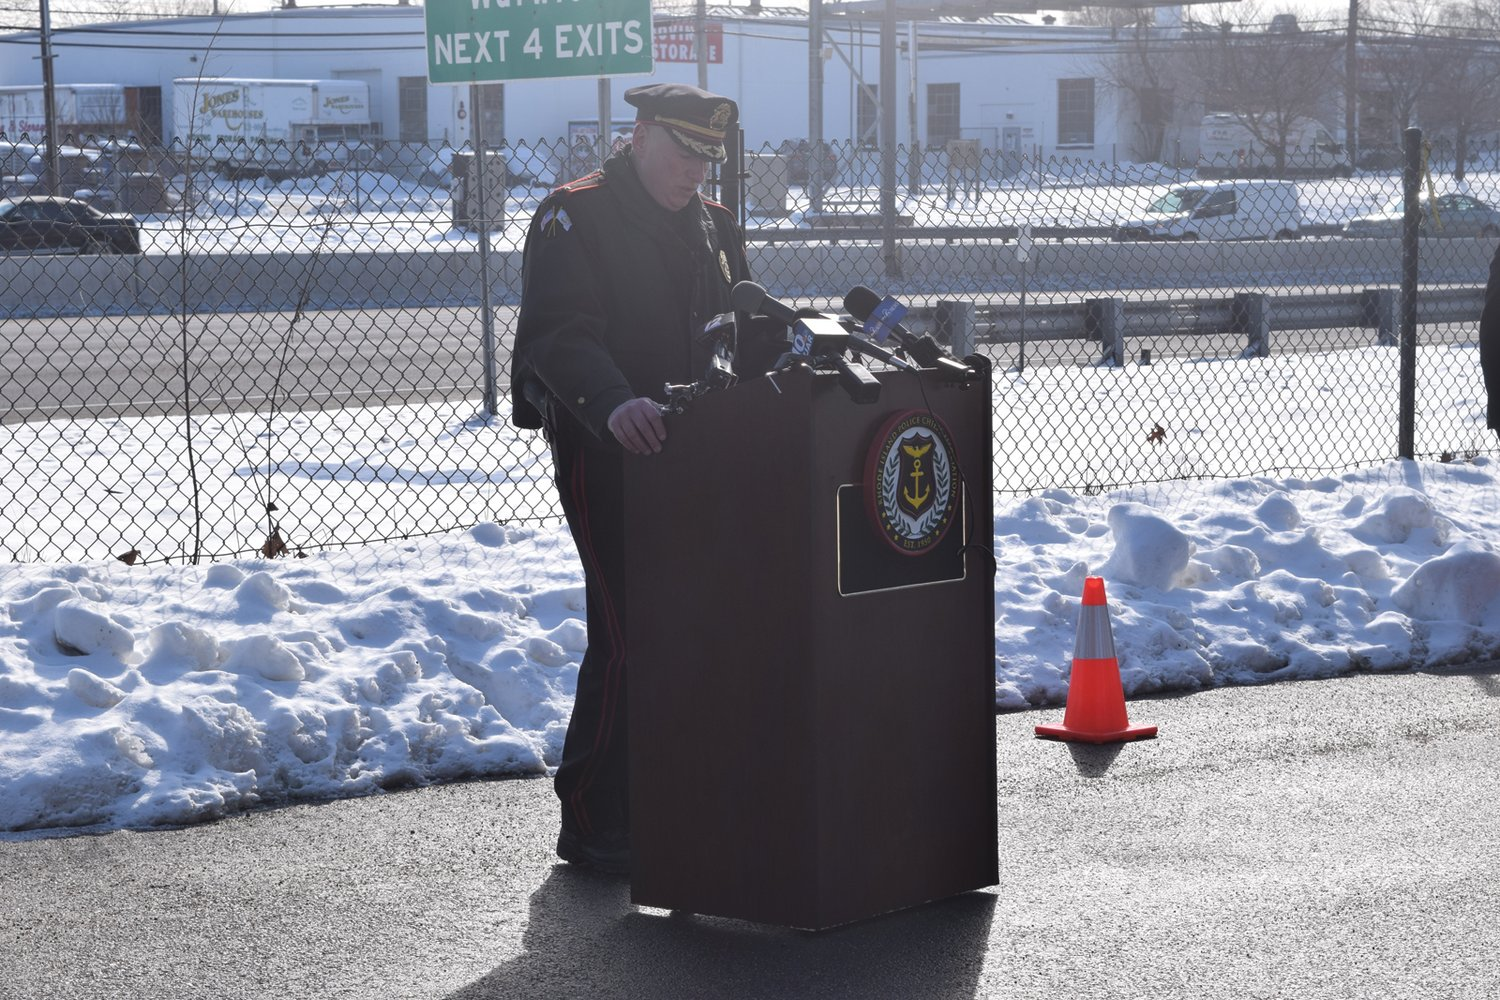 HELPFUL ADVICE: RIPCA President and West Greenwich Police Chief Richard Ramsay said drivers can help reduce roadway fatalities by refusing to drive impaired, wearing a seatbelt and turning off their phones before starting the car.